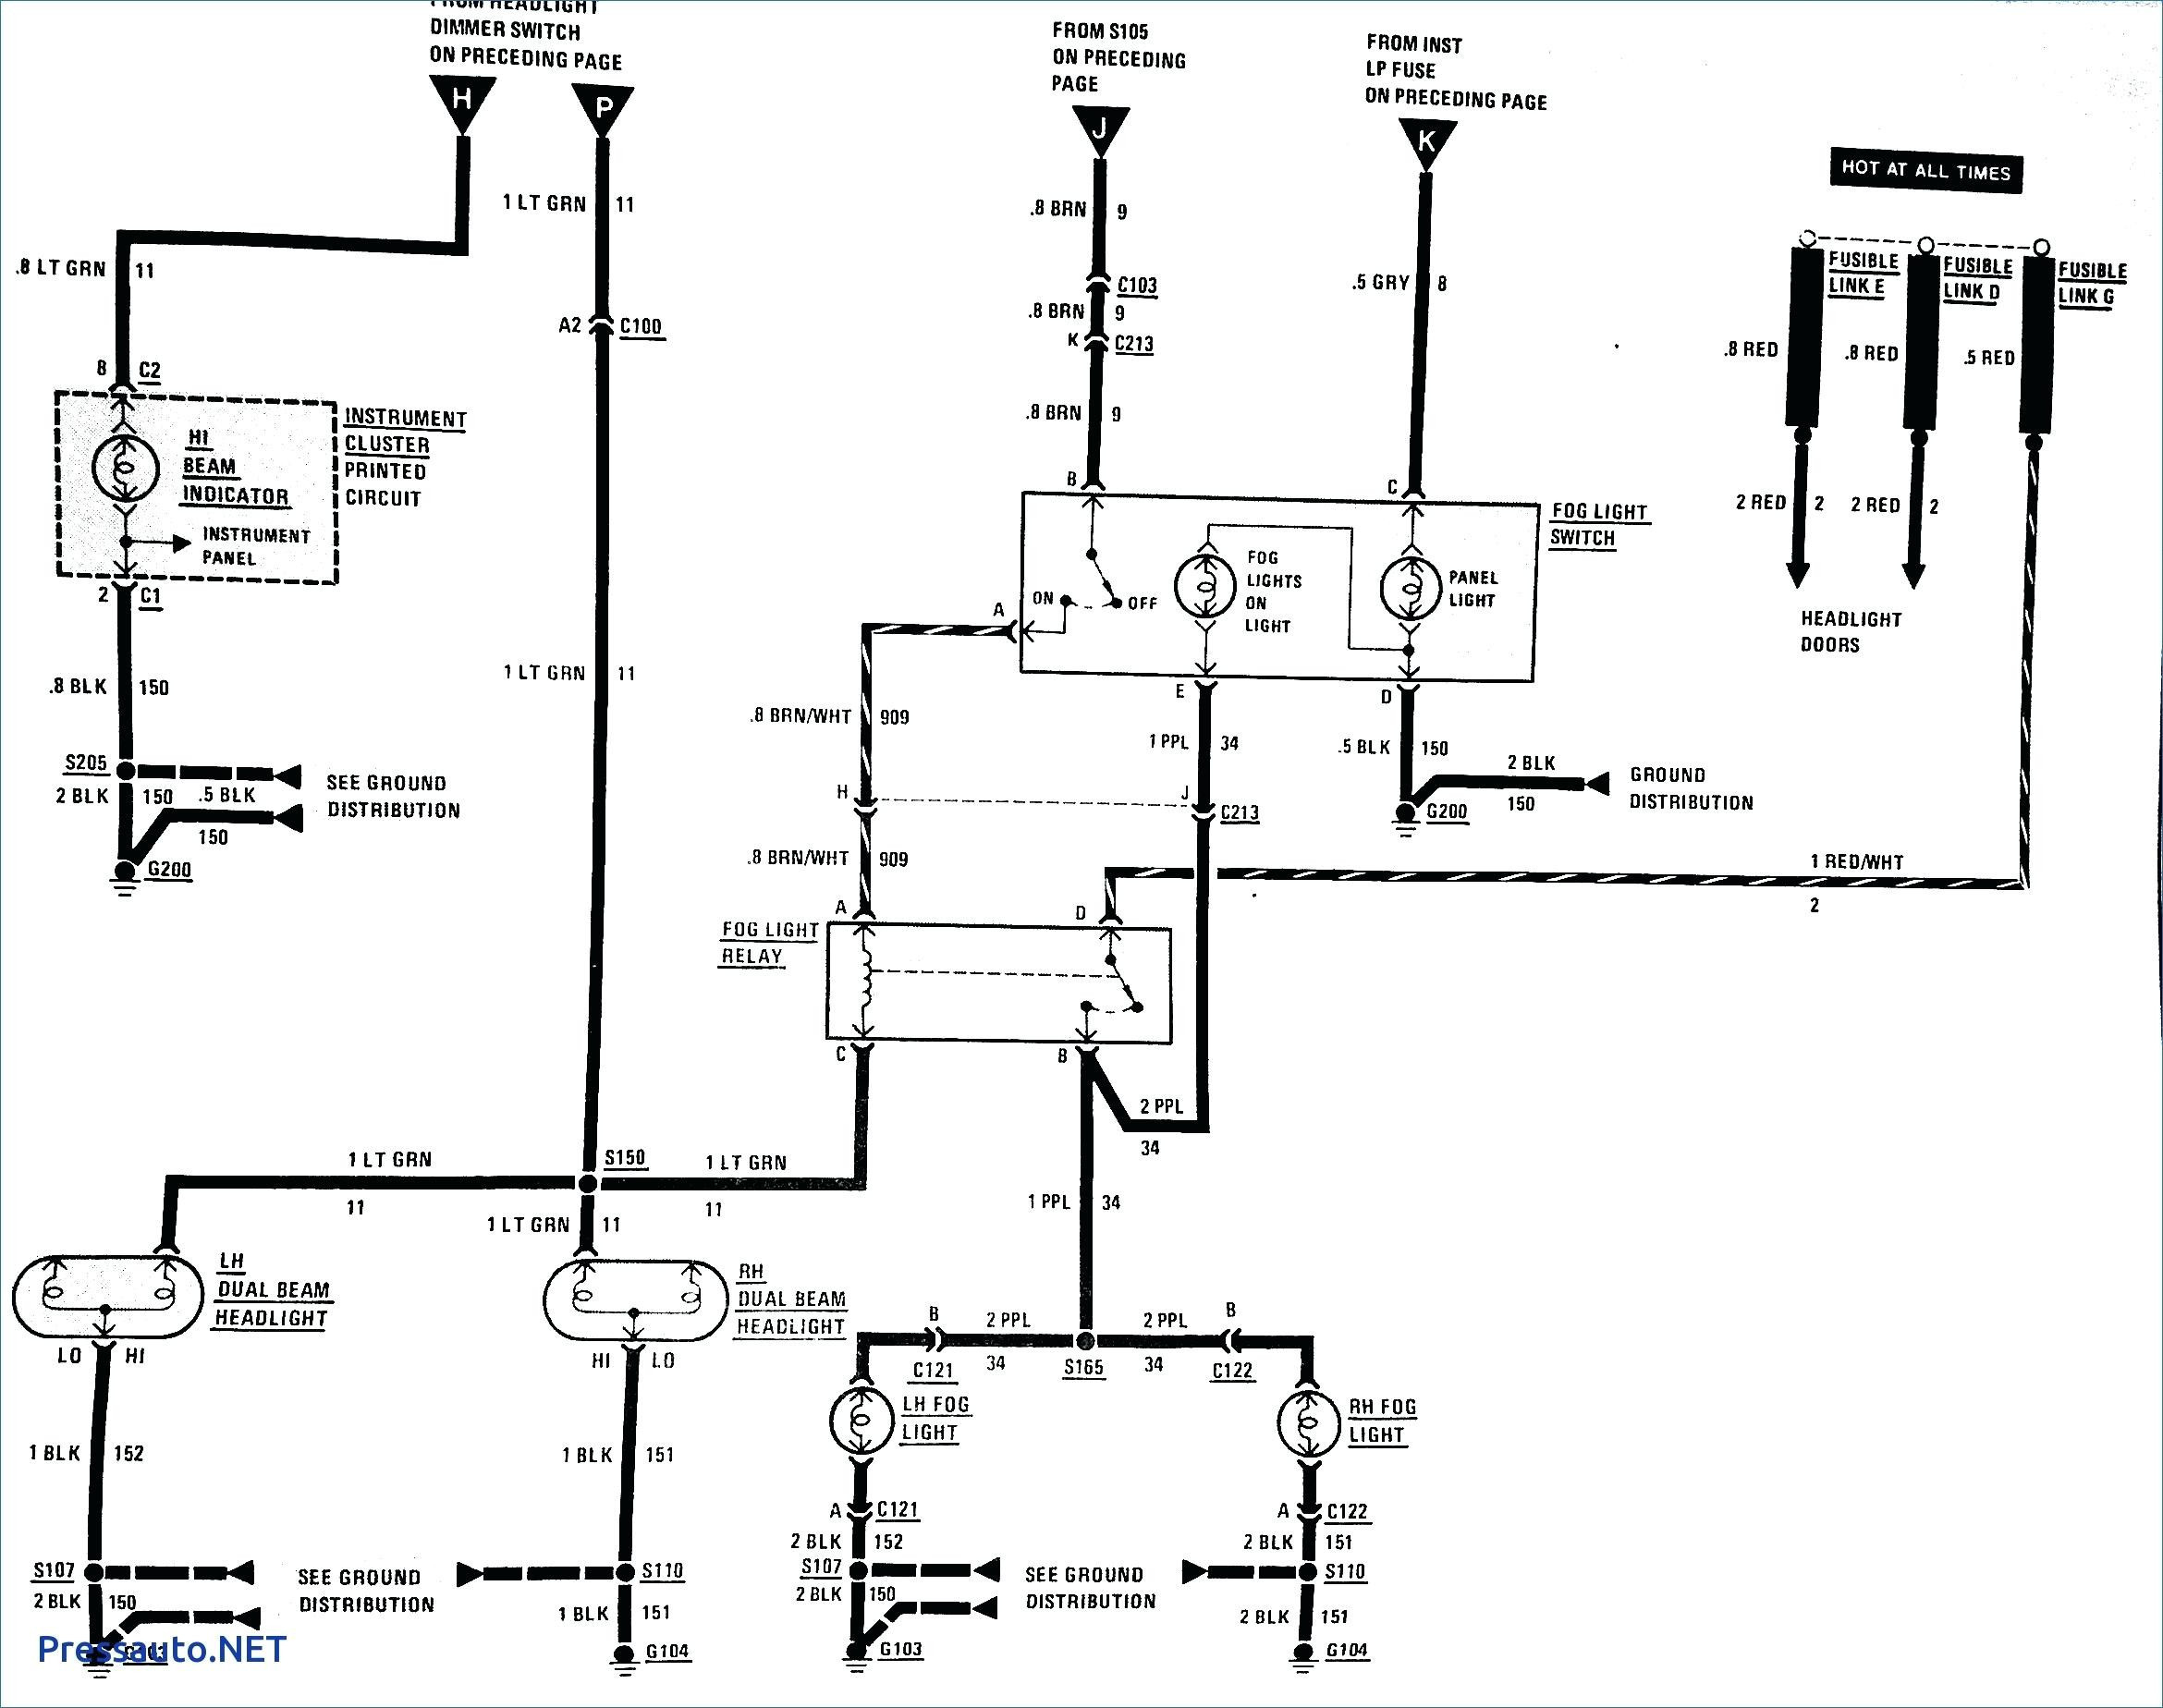 Bilge Pump Switch Wiring Diagram from 2020cadillac.com